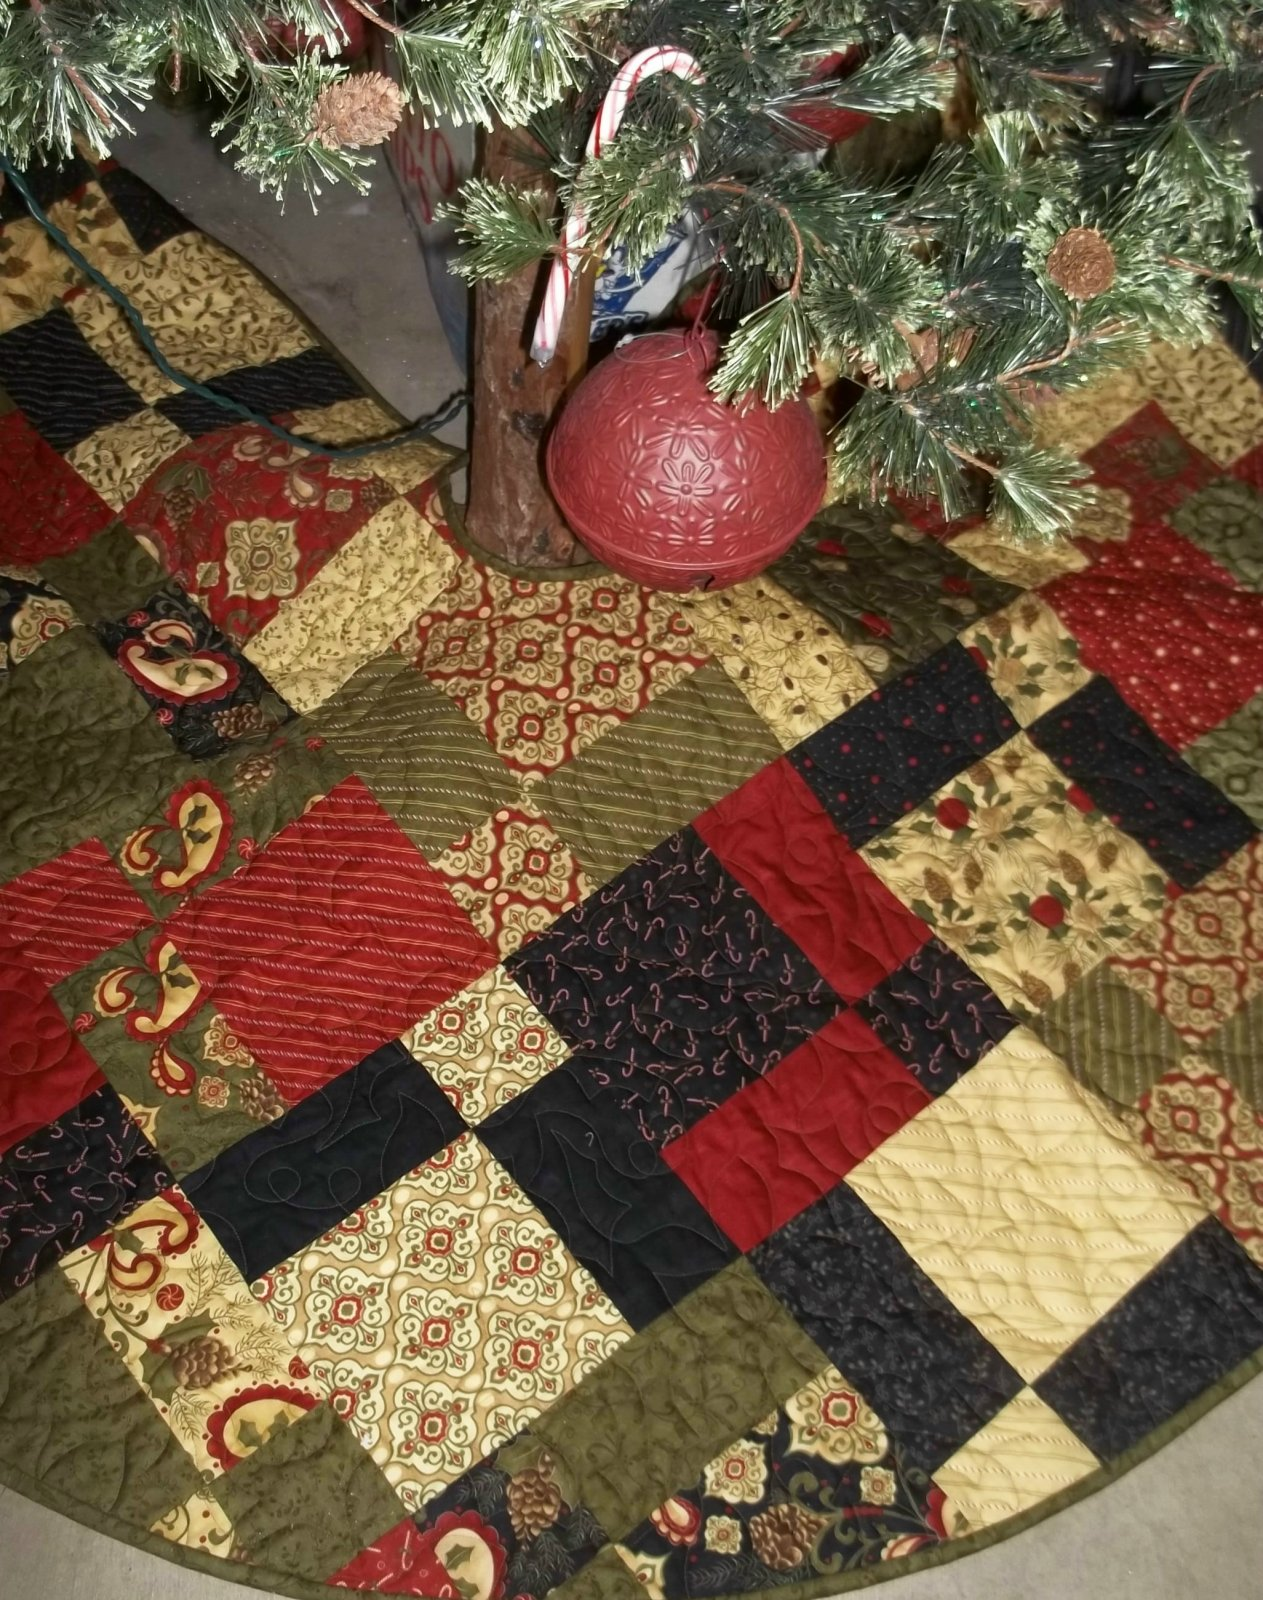 Hip Hop Christmas Tree skirt